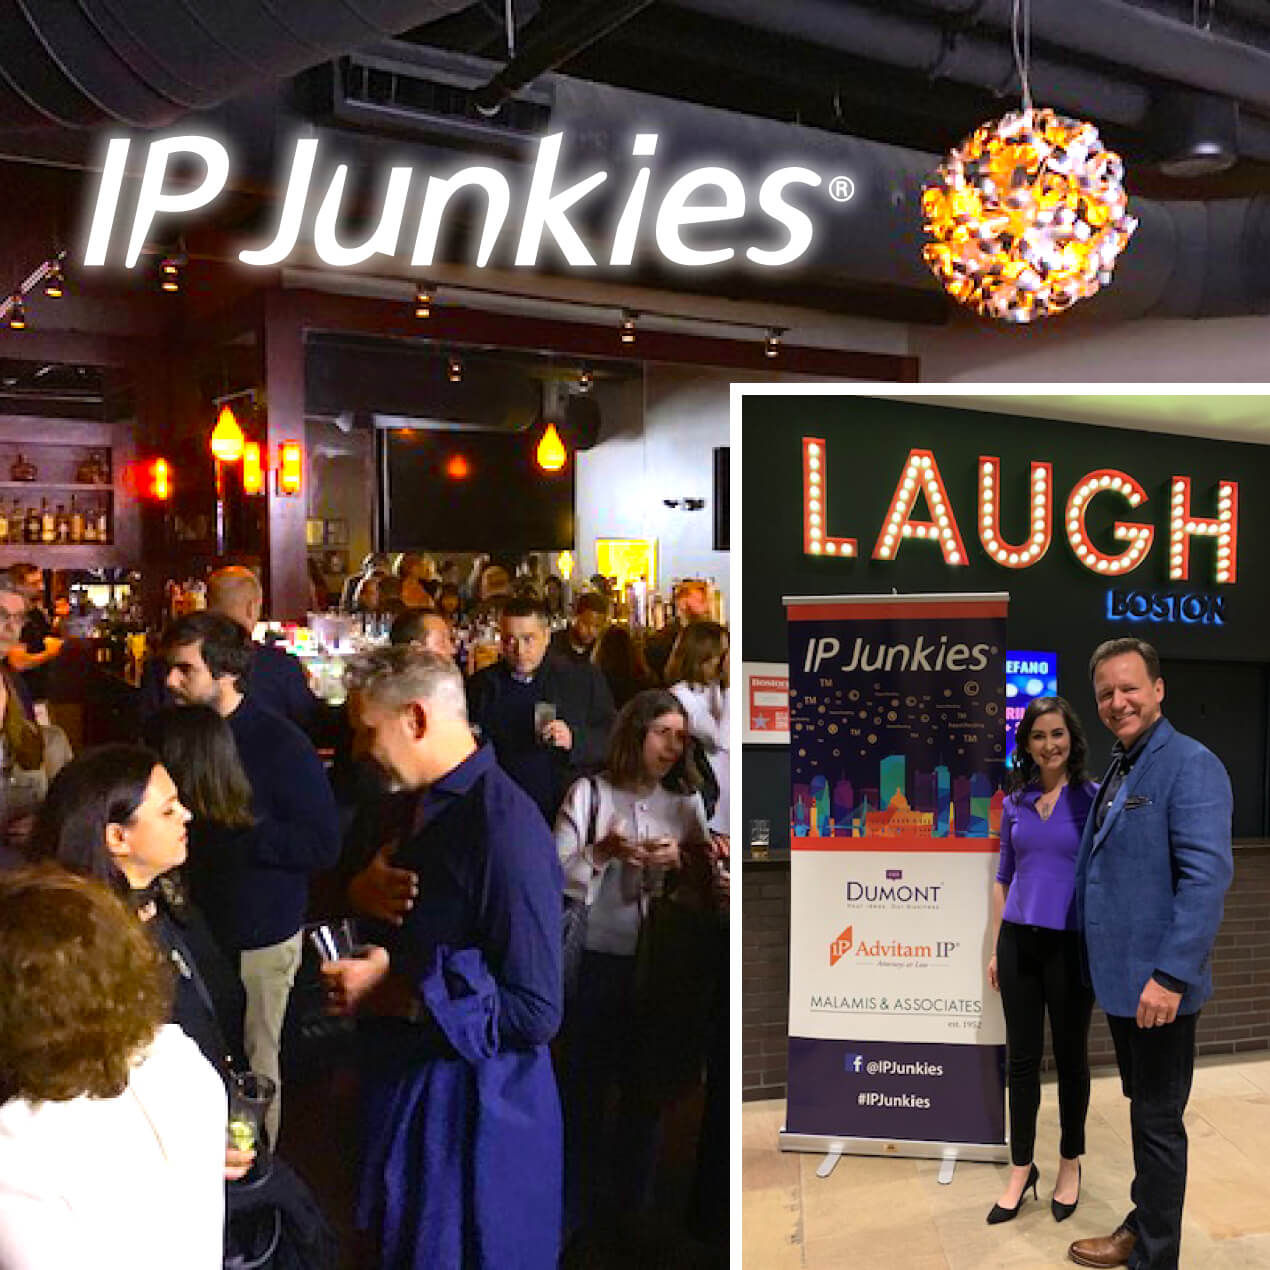 It Was More than Just a Tea Party for the IP Junkies® in Boston